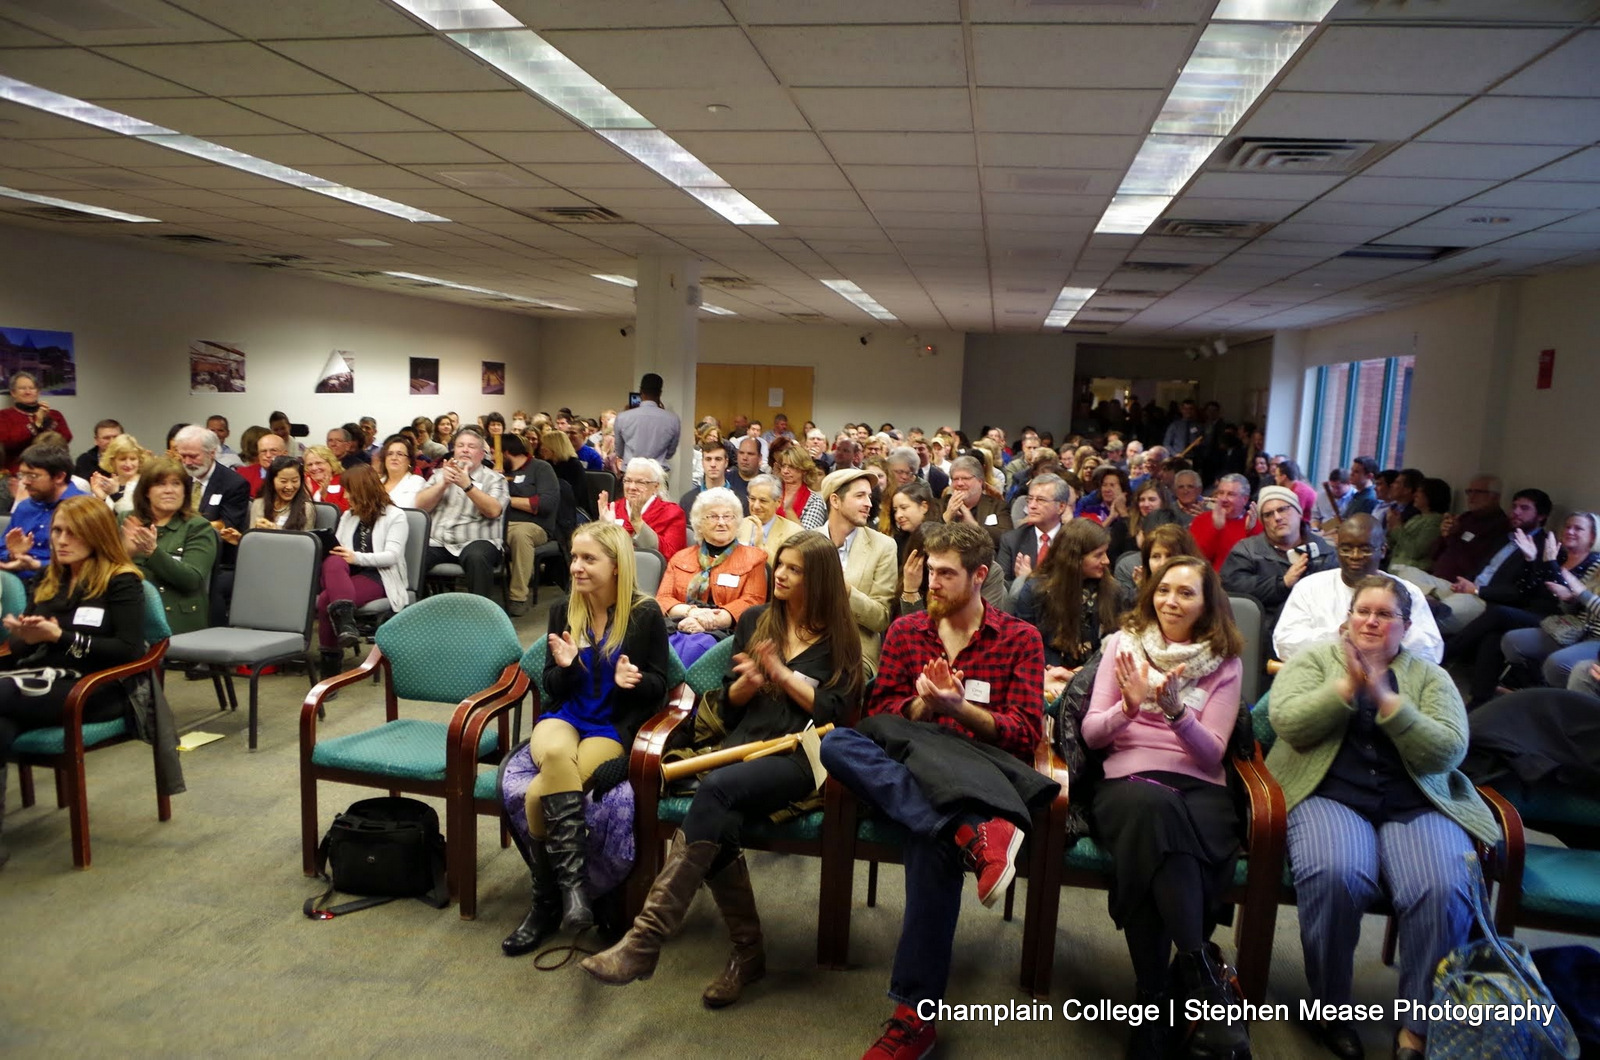 Family and friends gather in Champlain's Hauke Conference Room for the December Graduation